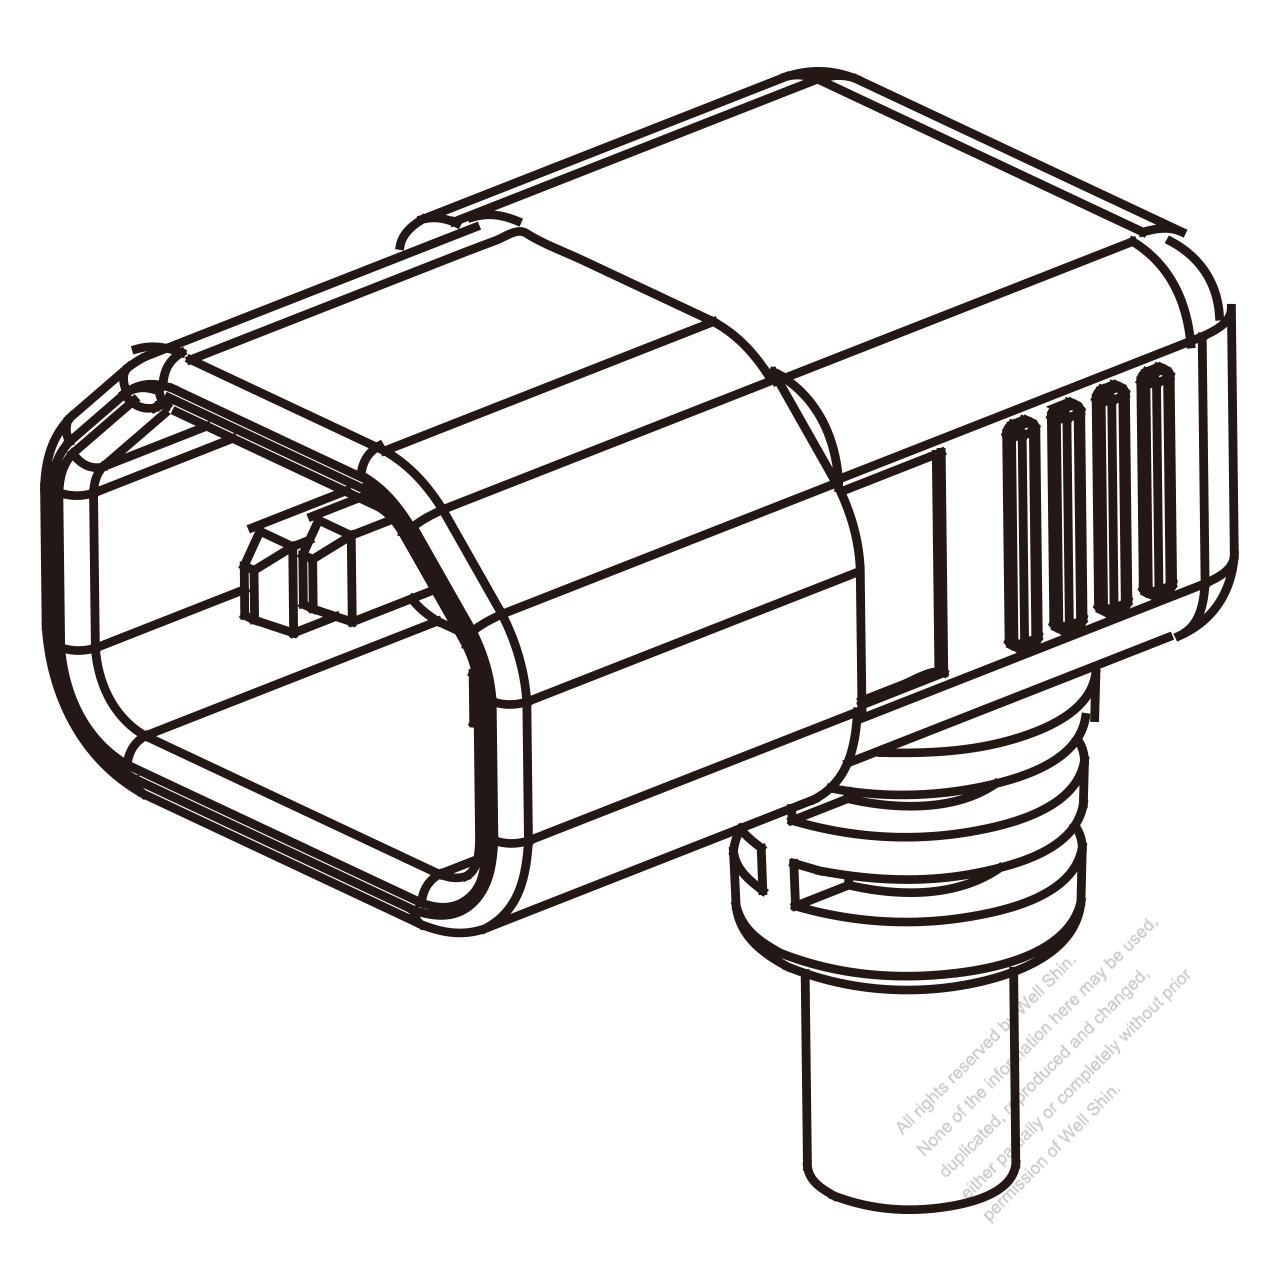 Europe IEC 320 Sheet E (C14) Plug Connectors 3-Pin Angle